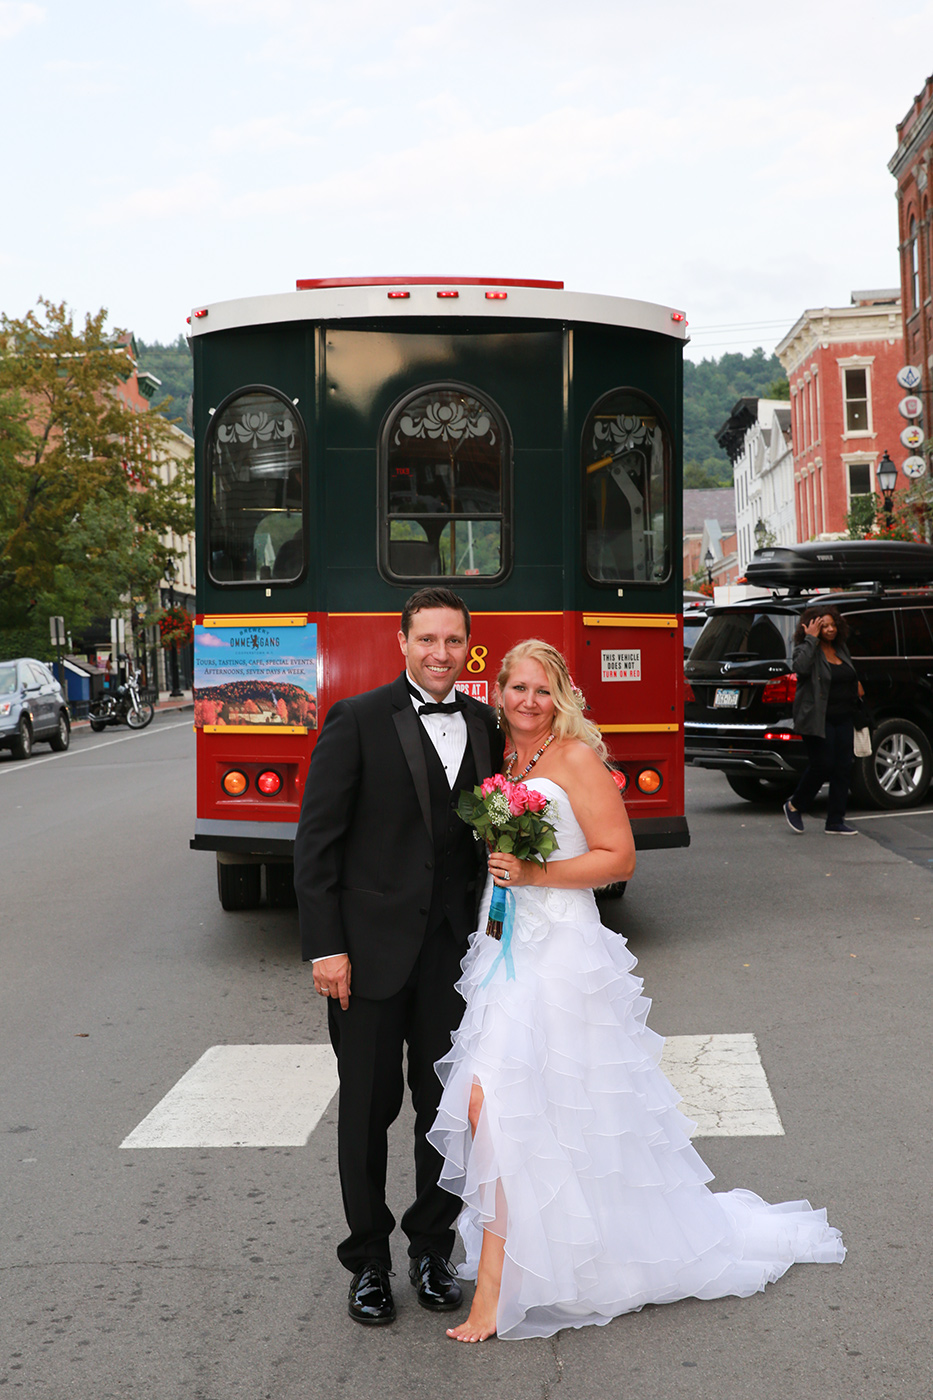 Wedding photography in Cooperstown, NY